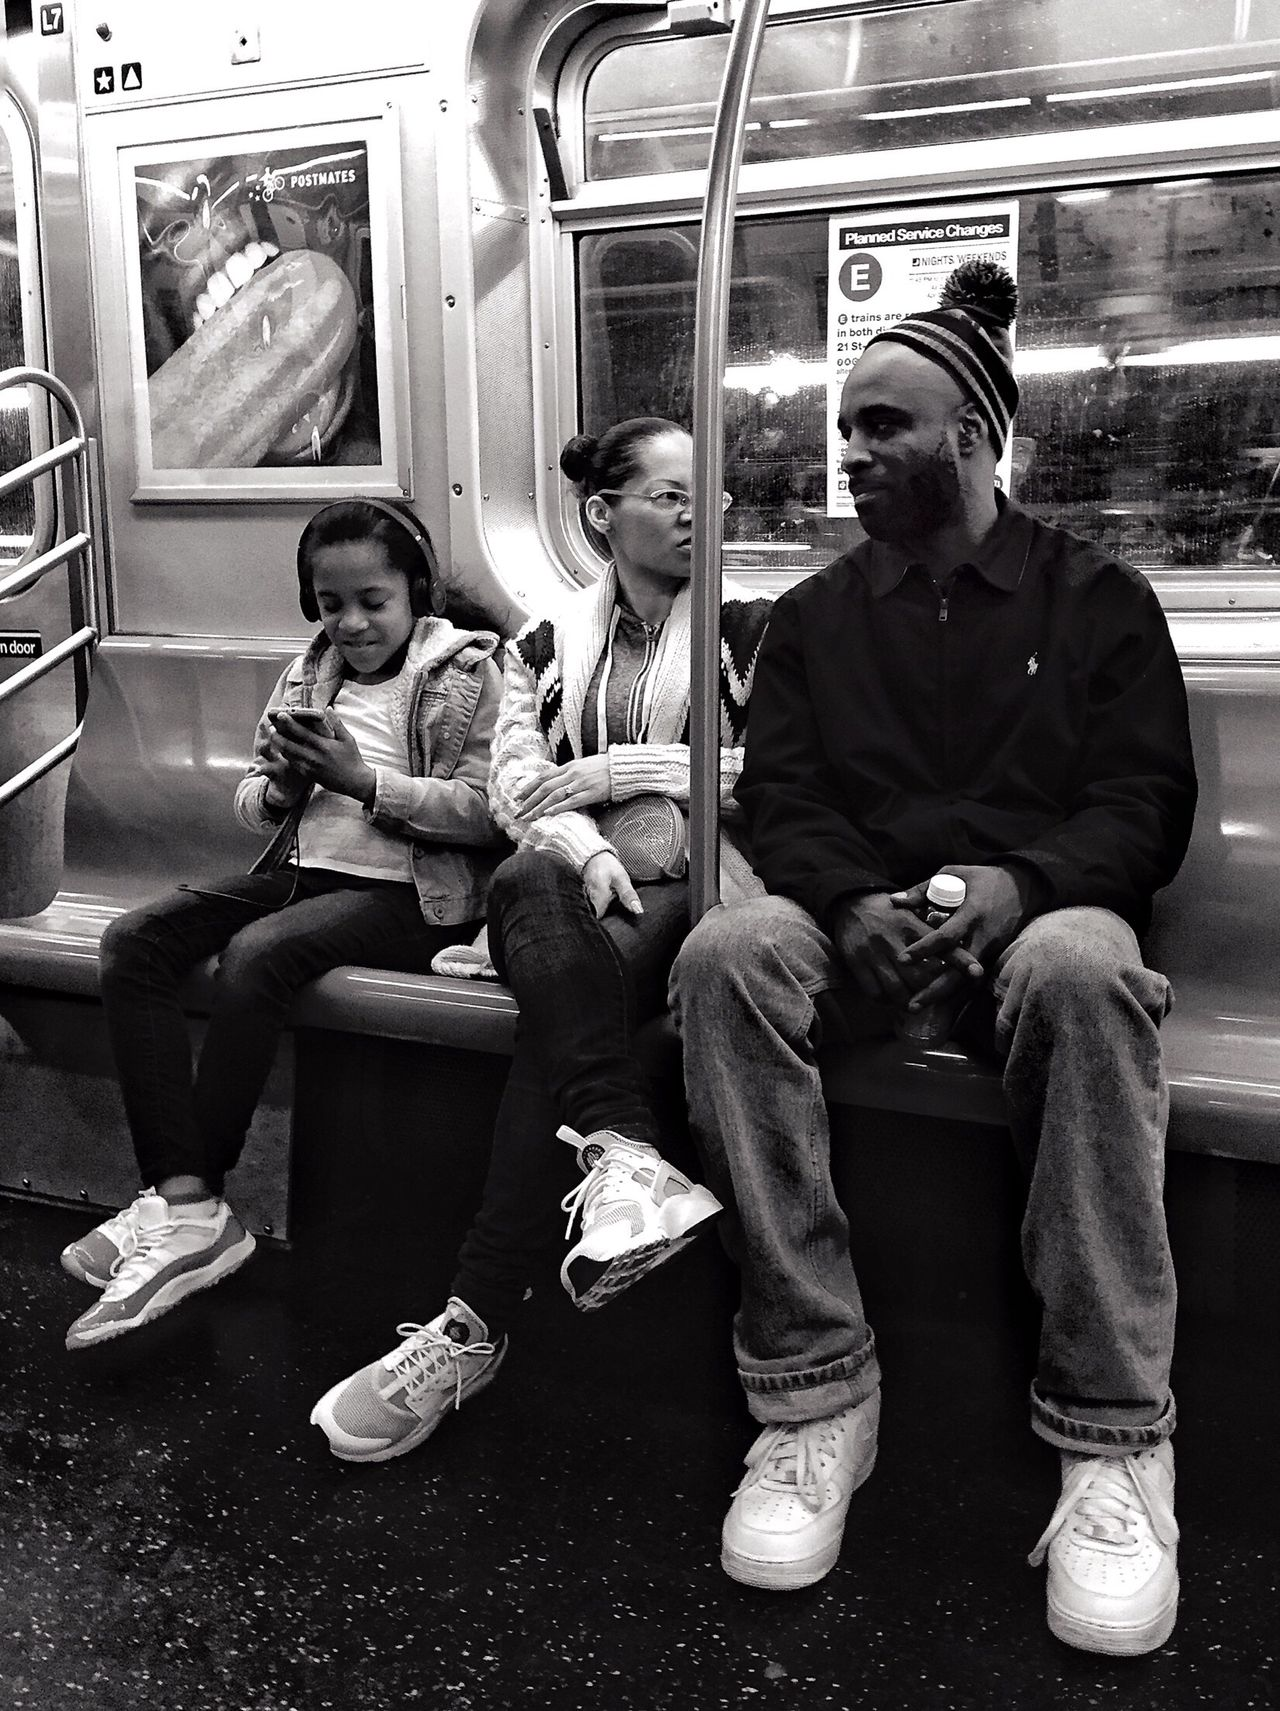 People Of New York Streetphotography Streetportrait Public Transportation Blackandwhite Bnw Mobilephotography Mpro Iphone6 Sitting Public Transportation Transportation Real People Train - Vehicle Full Length Mode Of Transport Subway Train Lifestyles Day People Adult